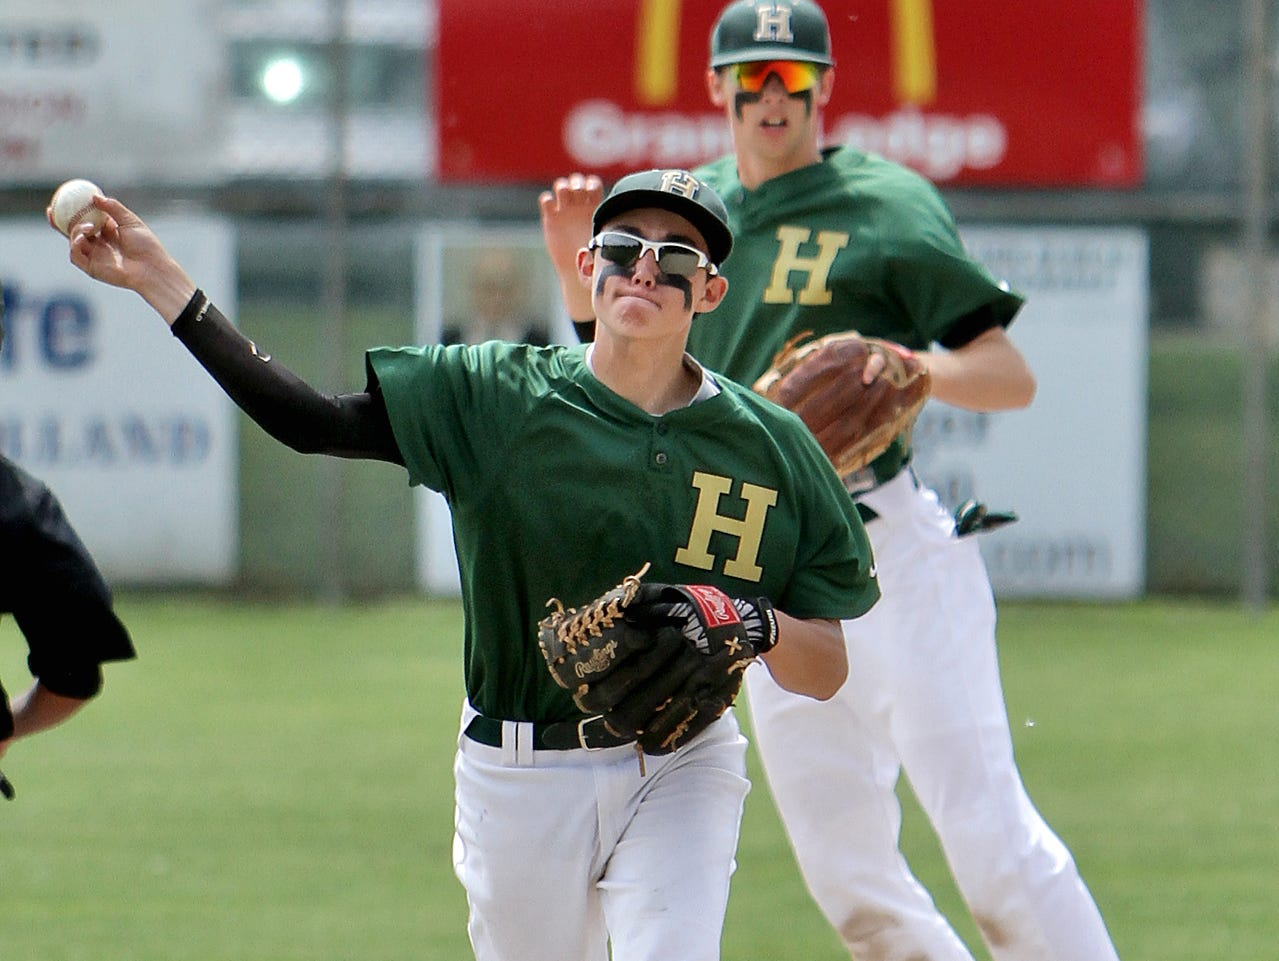 Riley Bennett had three hits and five RBIs for Howell as the Highlanders won their home opener on Sunday, 10-5.